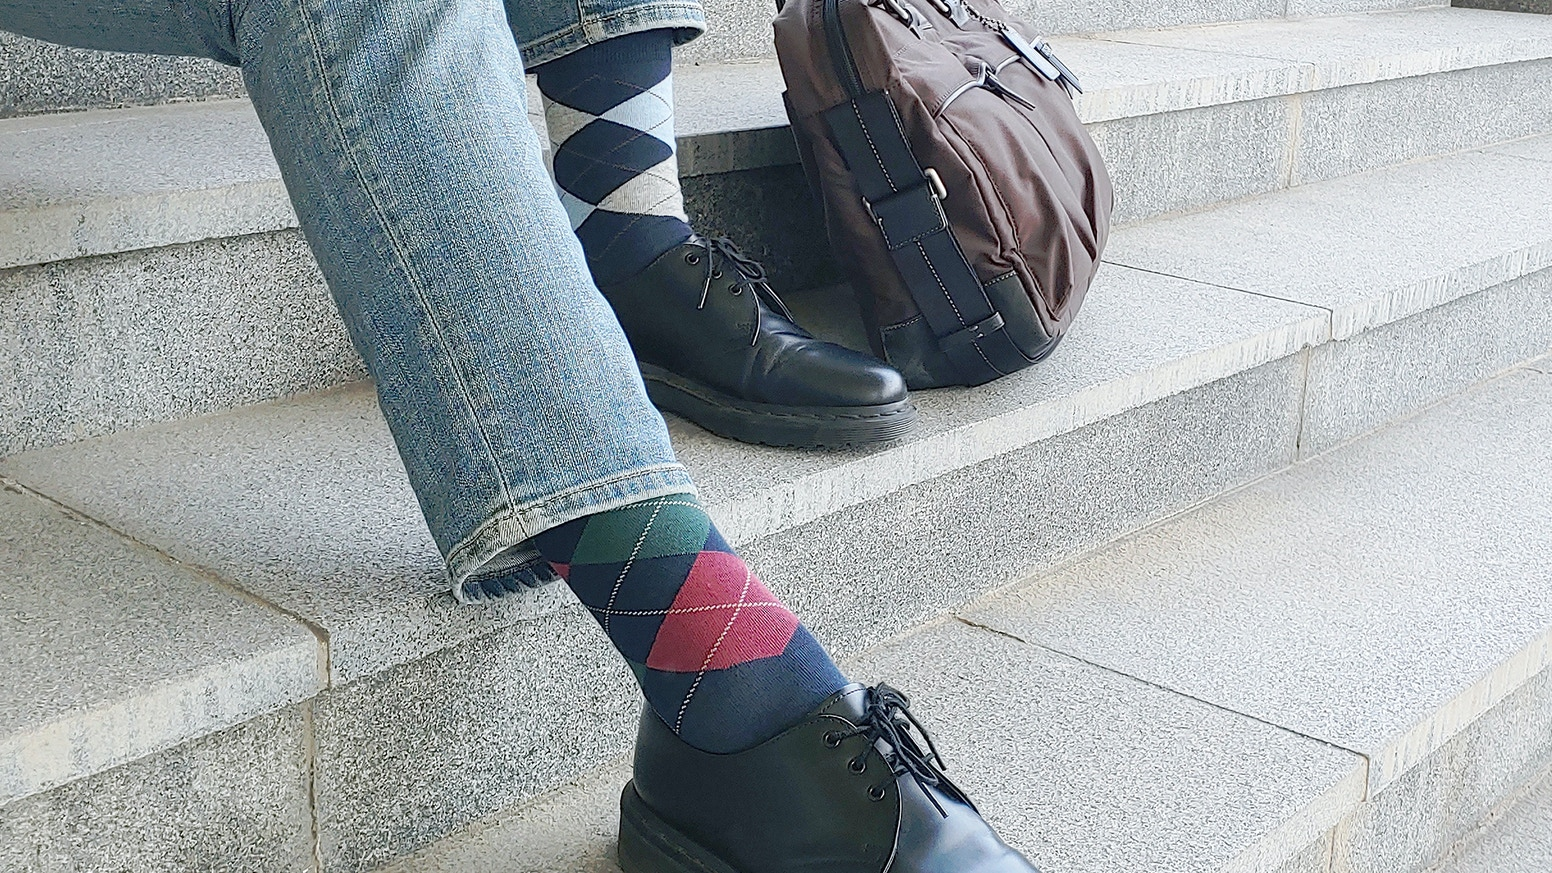 World's most versatile socks for men - Features heat regulation, odor elimination & bacteria suppression.